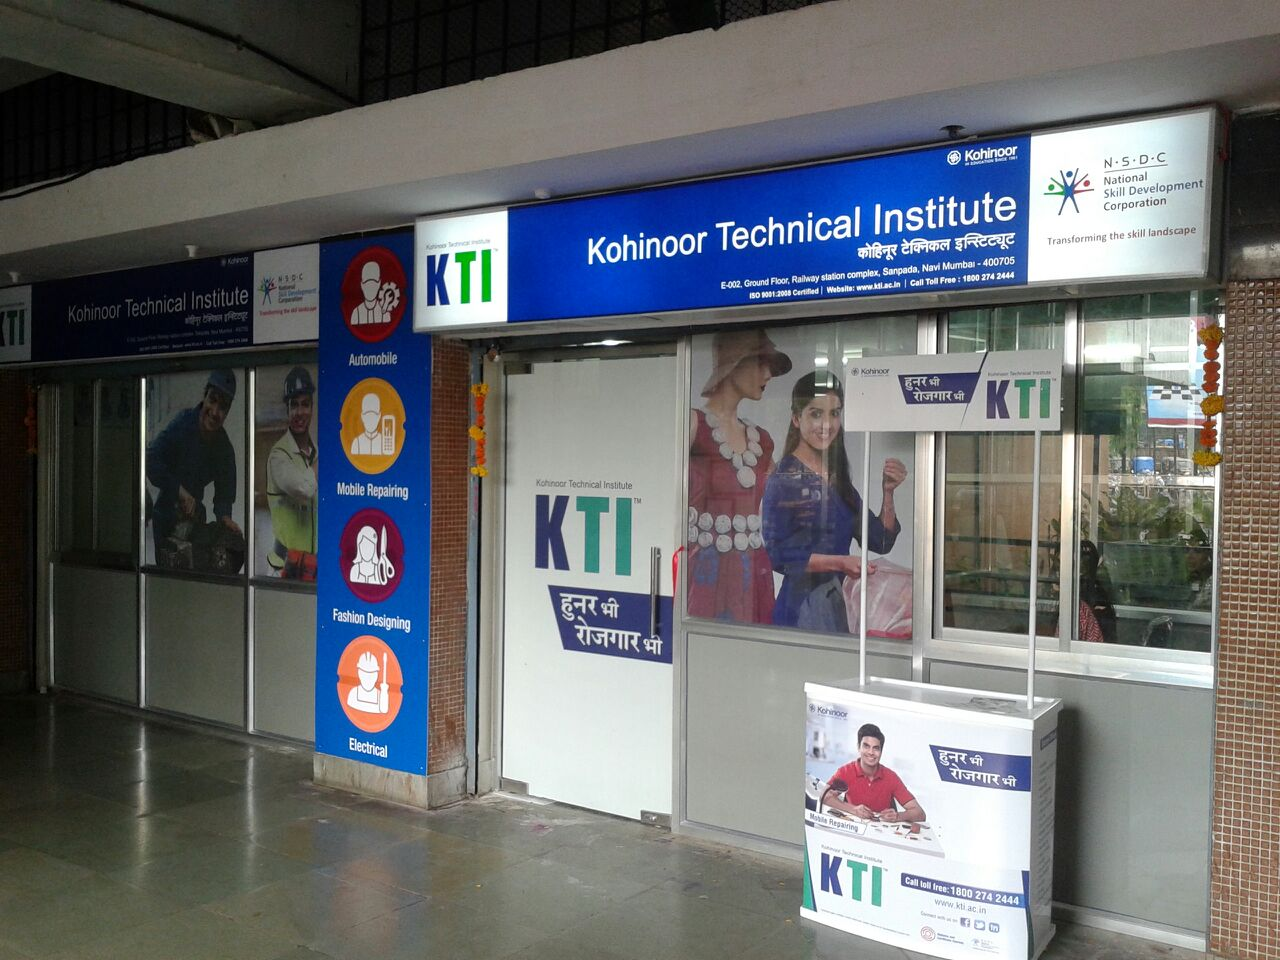 Kohinoor Technical Institute Mumbai Courses Fees Placements Ranking Admission 2020